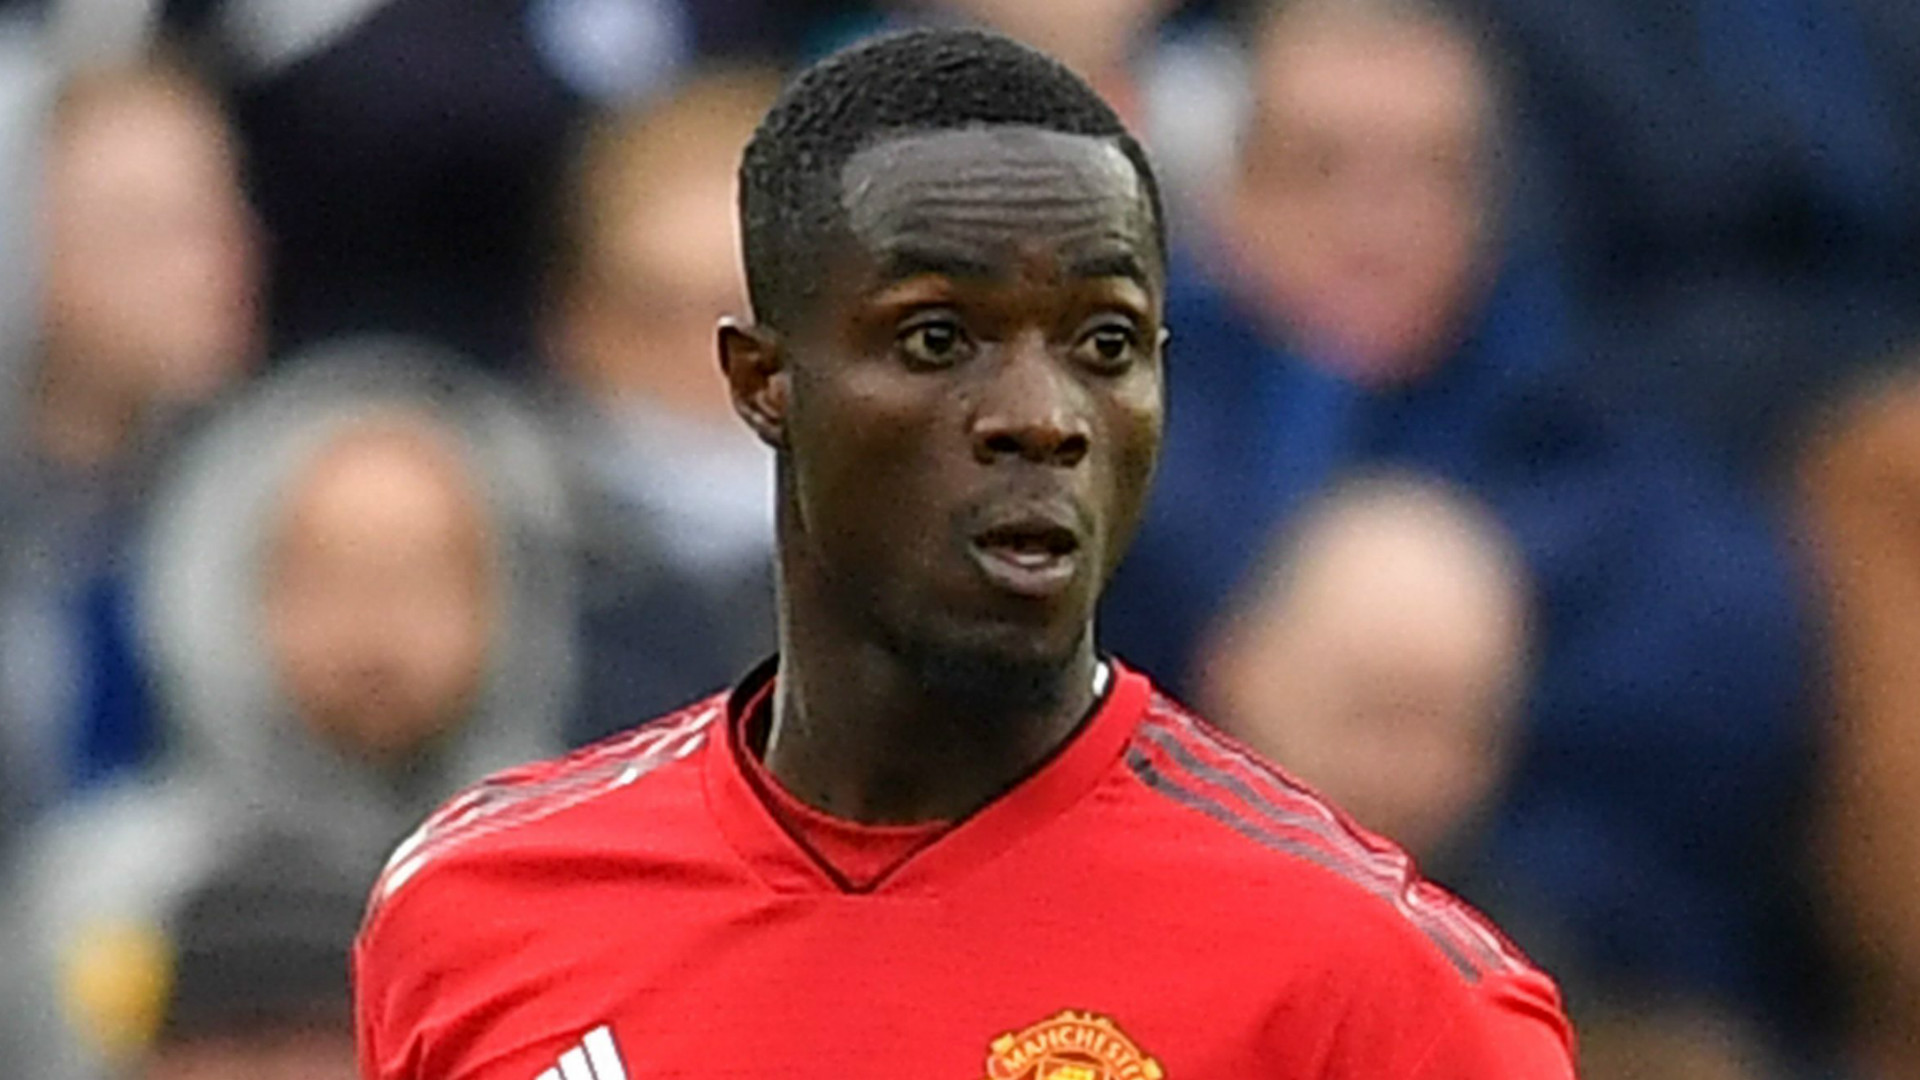 Bailly: Manchester United in contract talks with defender - Solskjaer | Sporting News Canada